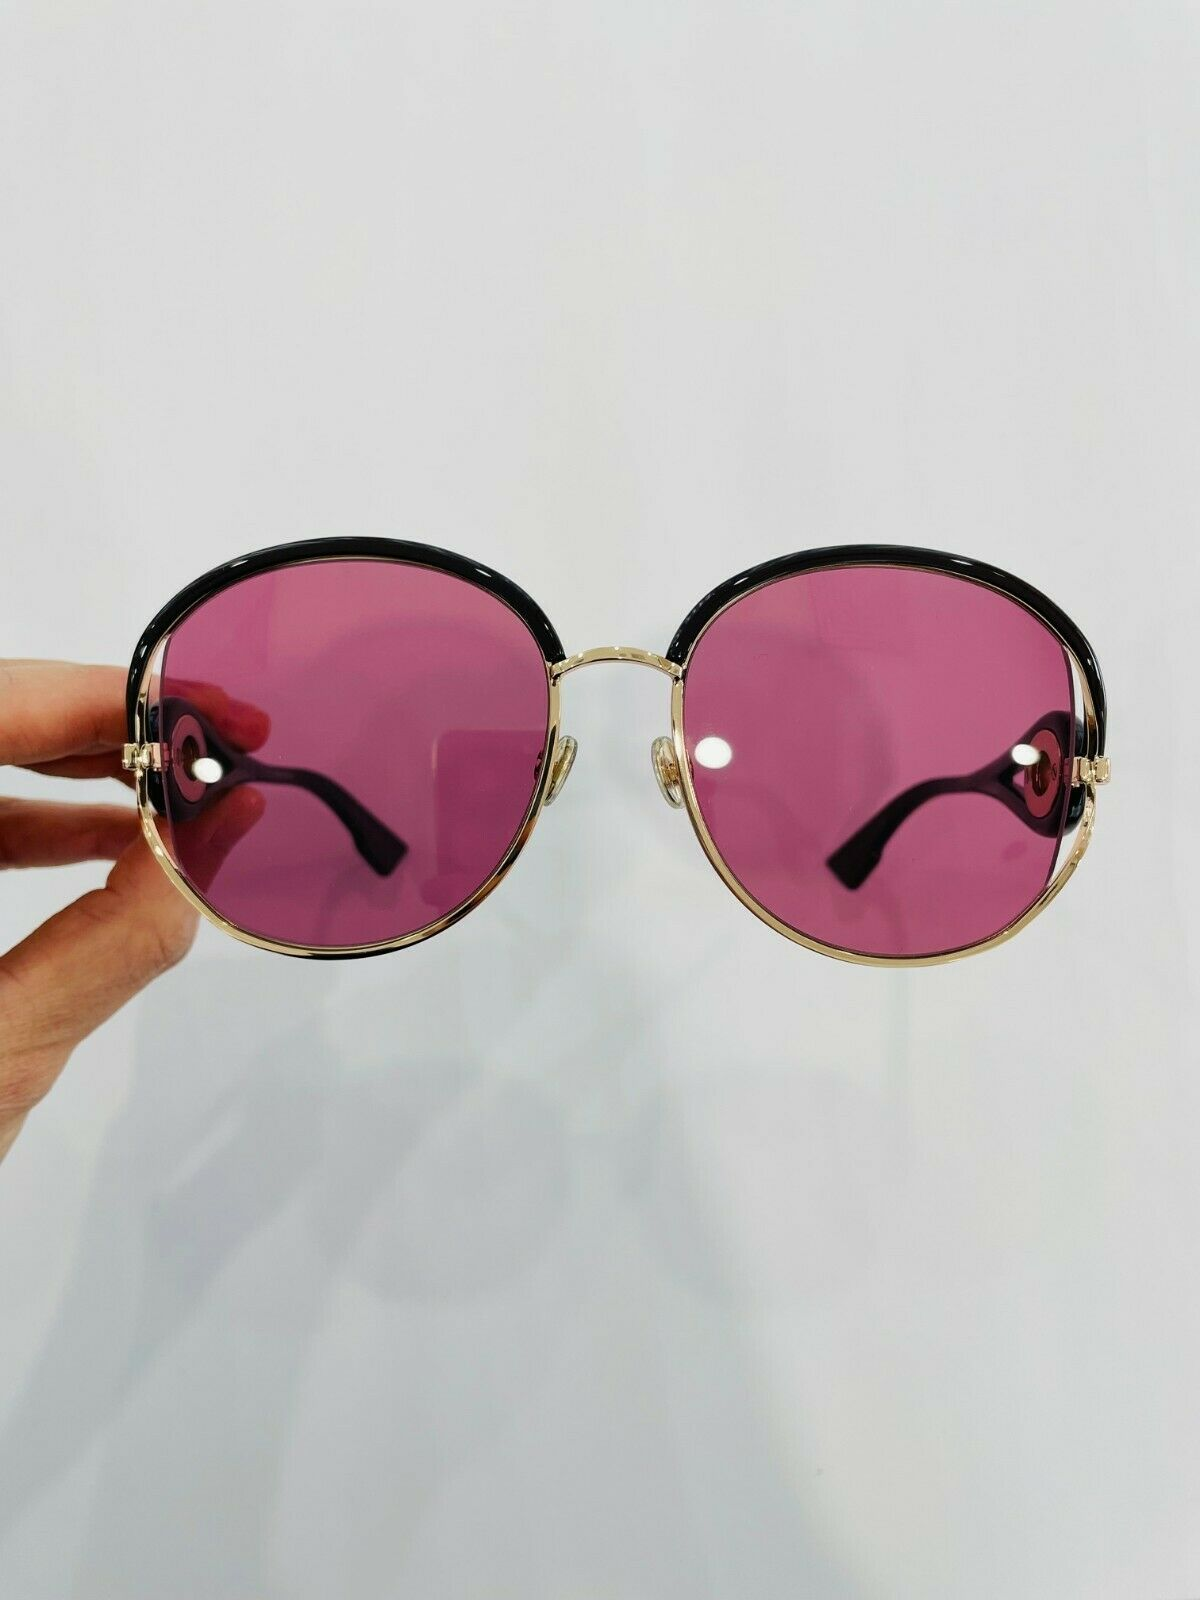 DIOR sunglasses model DiorNewVolute colour S9EVC (NEW) Made in Italy